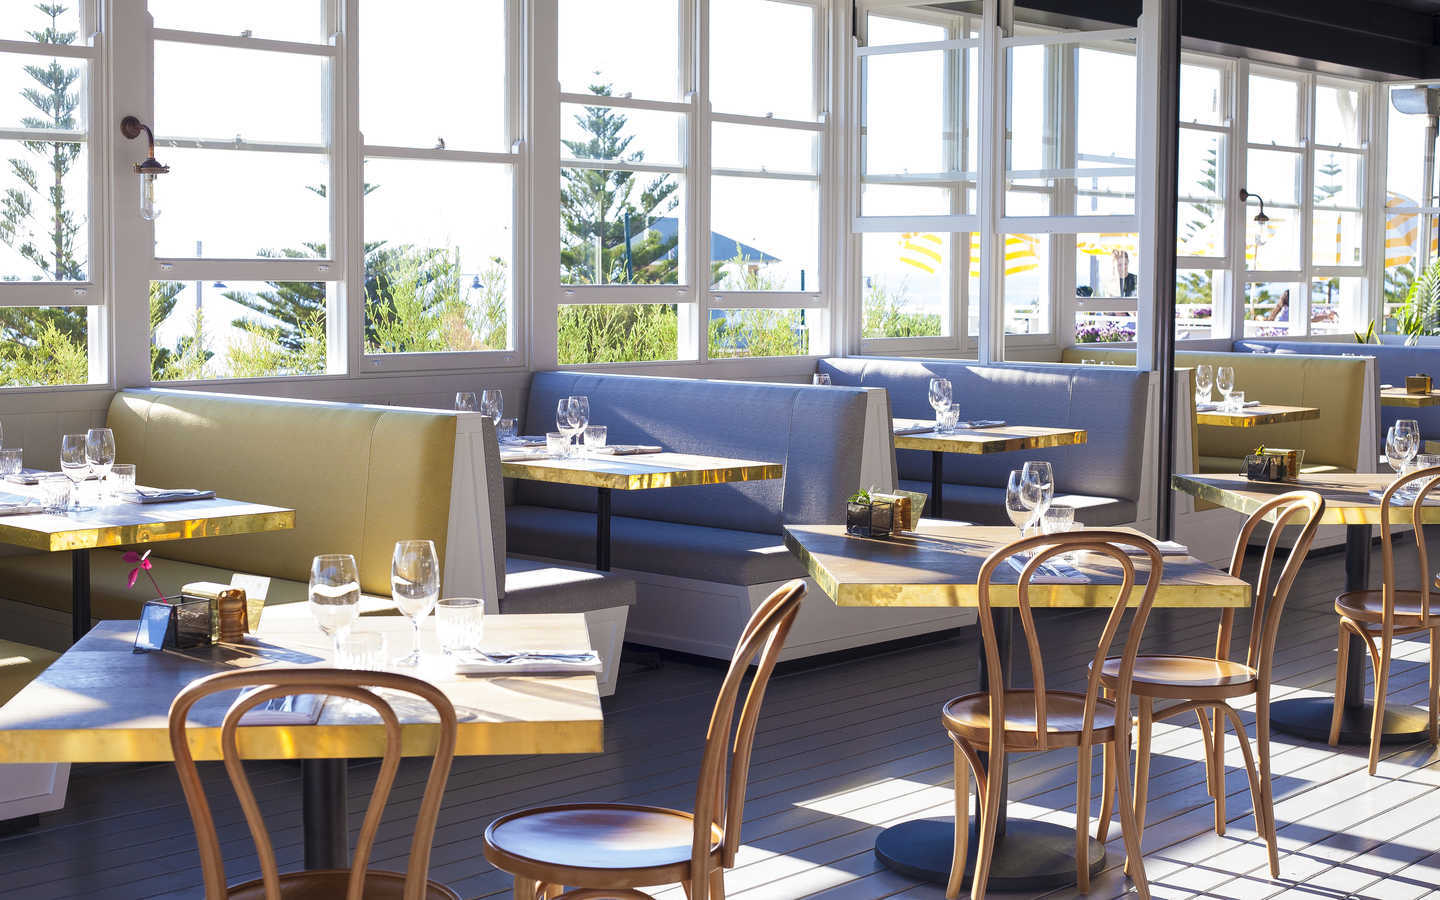 The Shorehouse. Oh we do like to brunch beside the seaside!